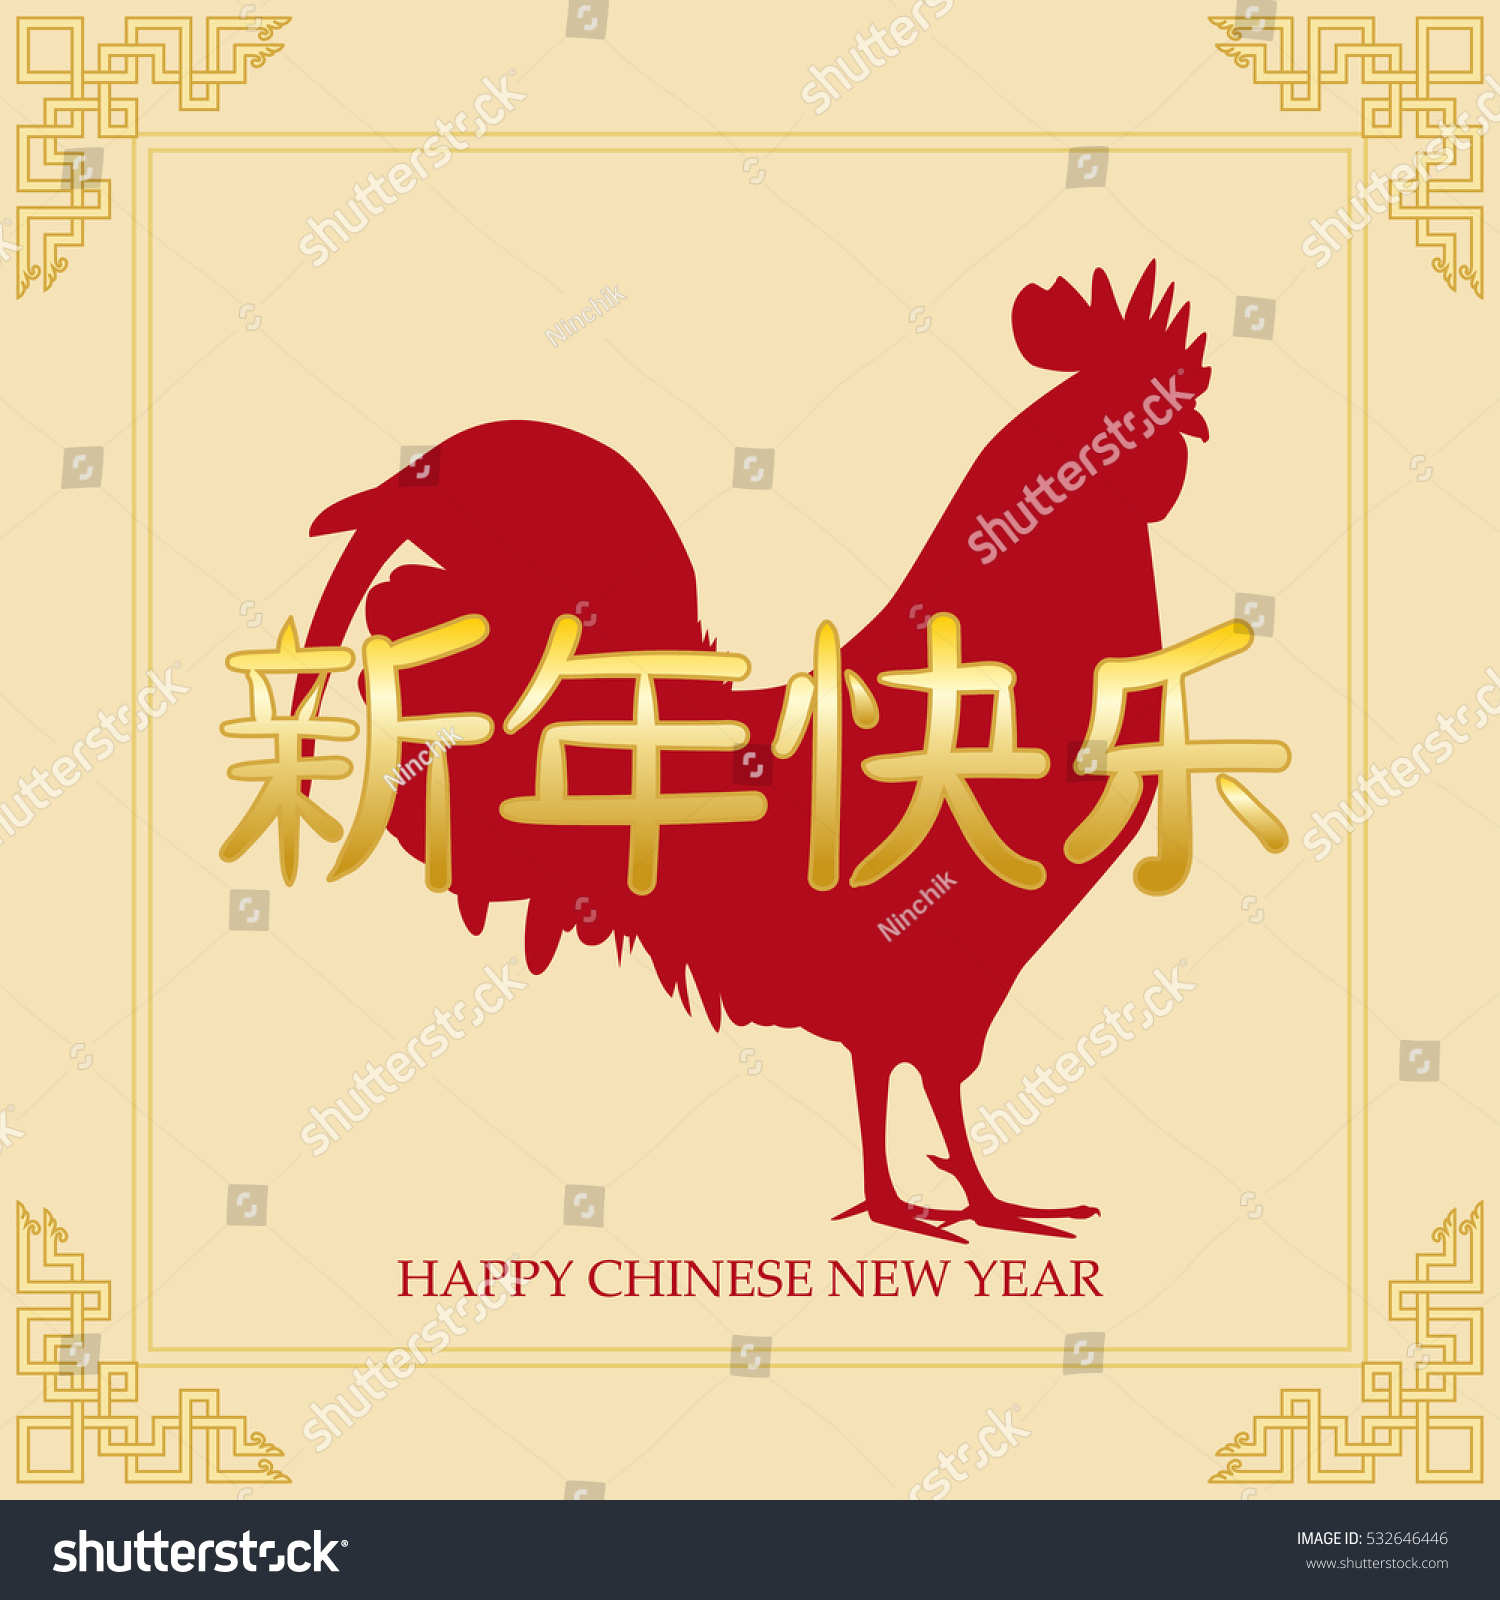 Chinese Calendar Illustration : Chinese new year illustration rooster symbol stock vector